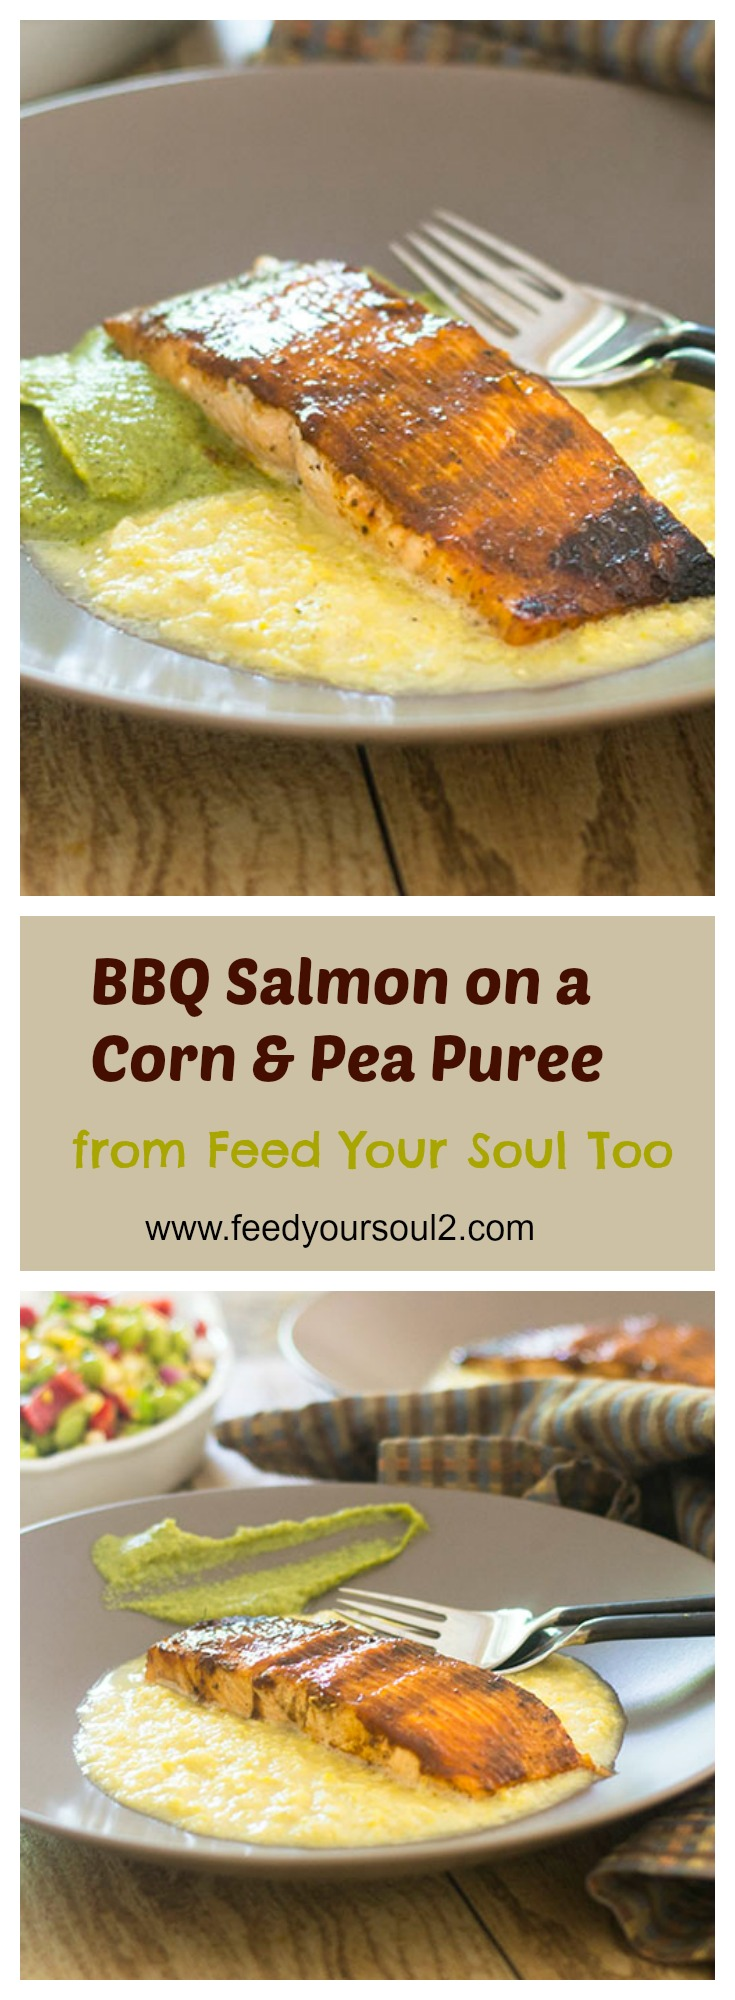 BBQ Salmon over Corn & Pea Purees #seafood #puree #salmon #corn | feedyoursoul2.com